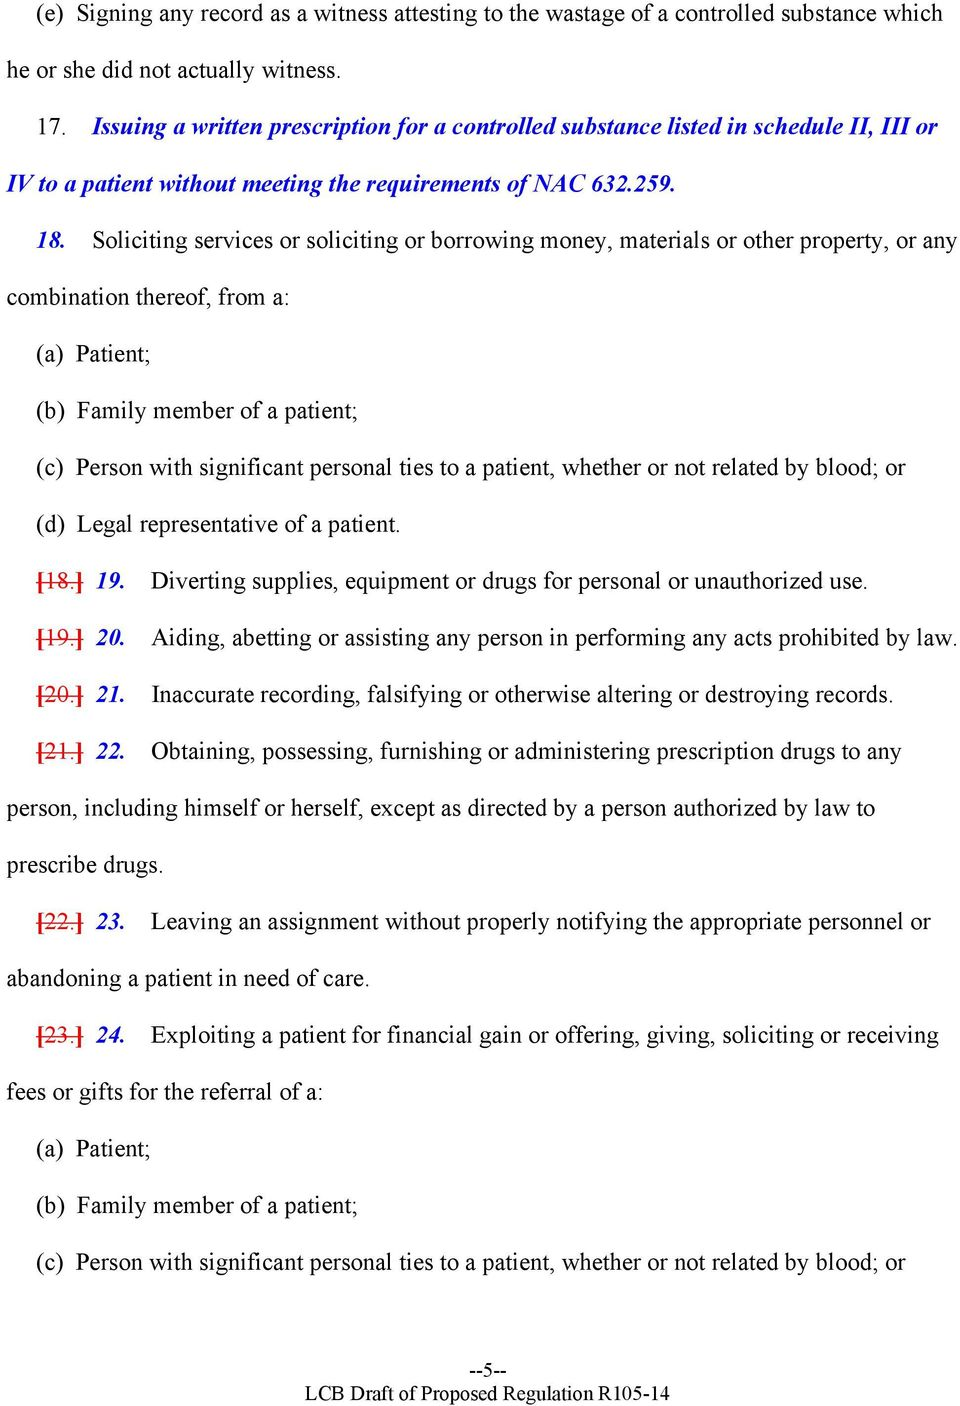 Soliciting services or soliciting or borrowing money, materials or other property, or any combination thereof, from a: (a) Patient; (b) Family member of a patient; (c) Person with significant